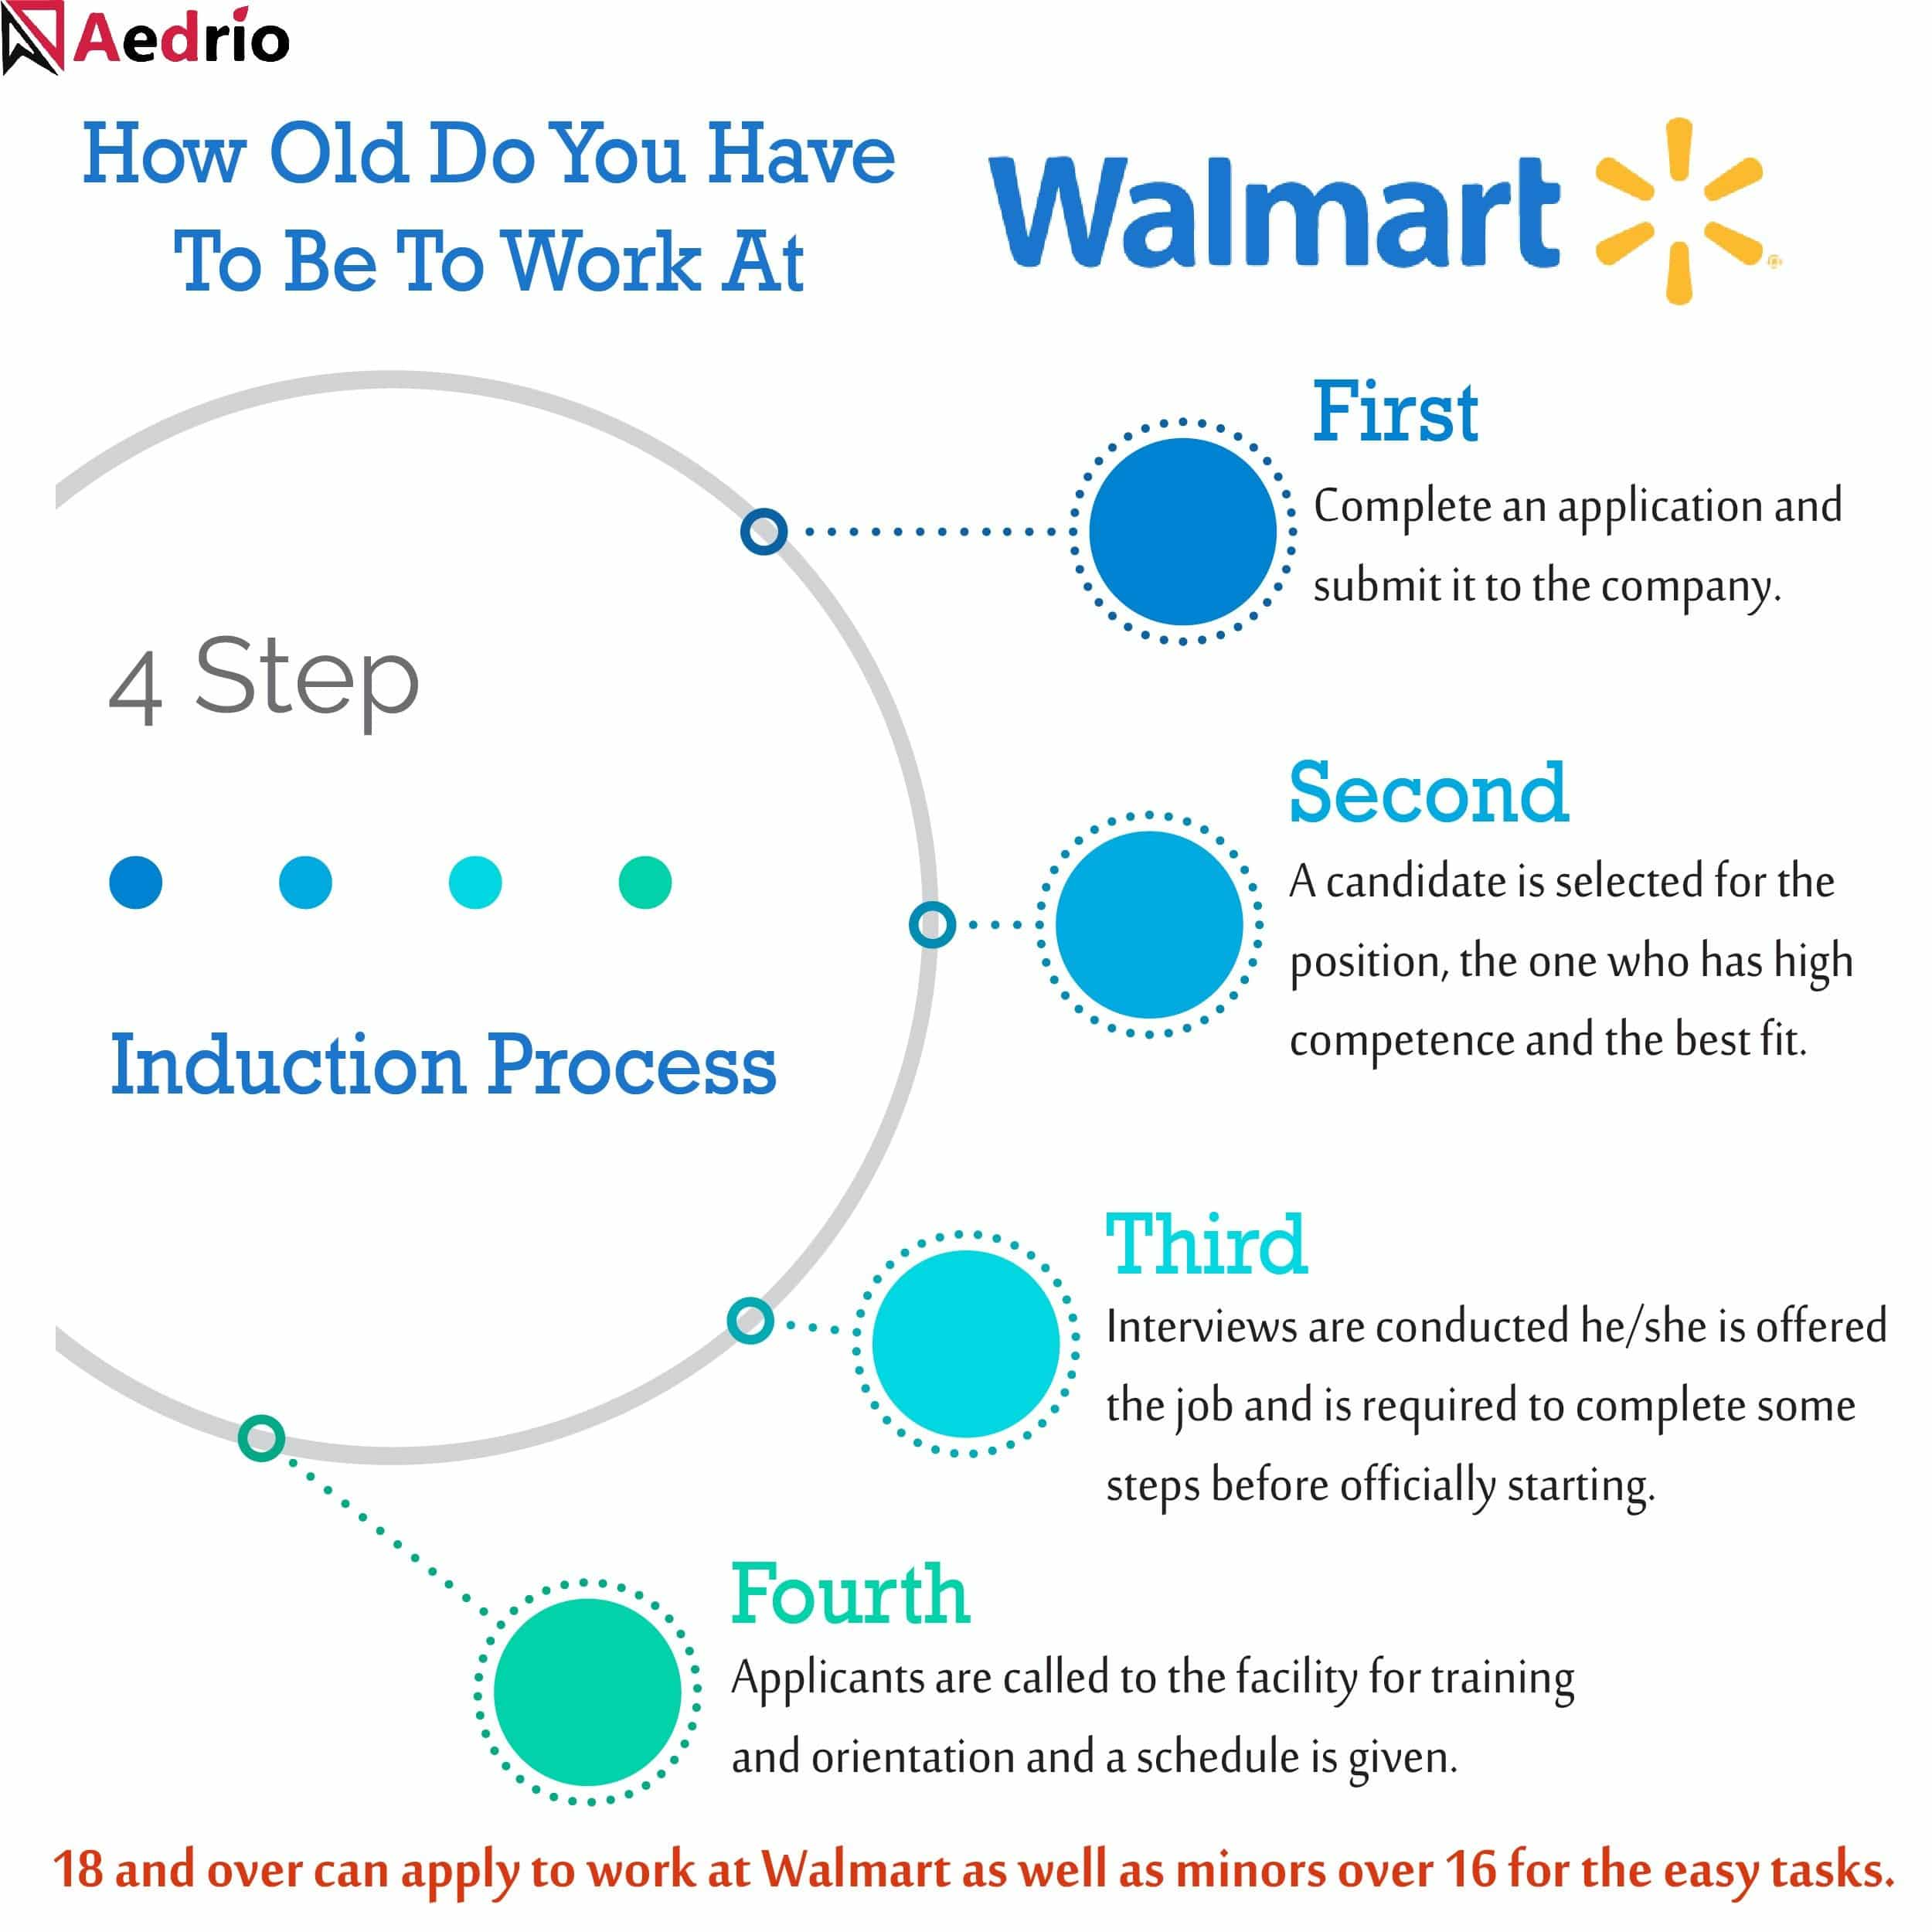 how old do you have to be to work at Walmart